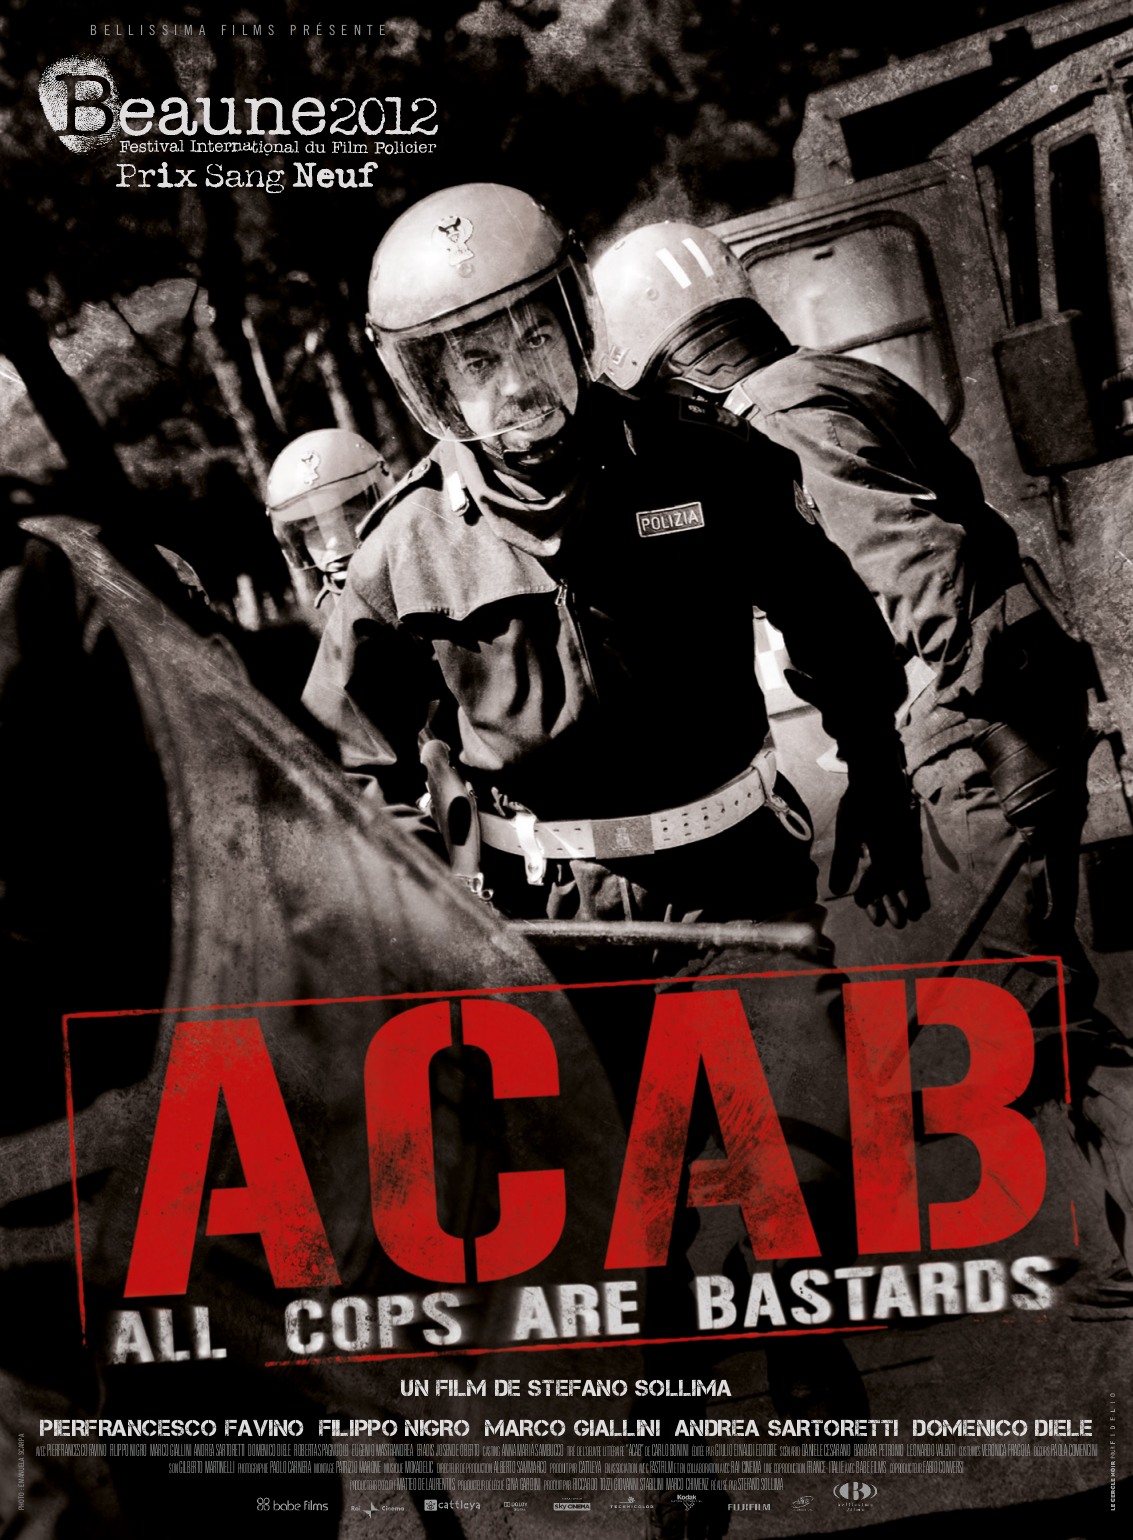 Filme Skinhead within critique : acab – all cops are bastards, un film de stefano